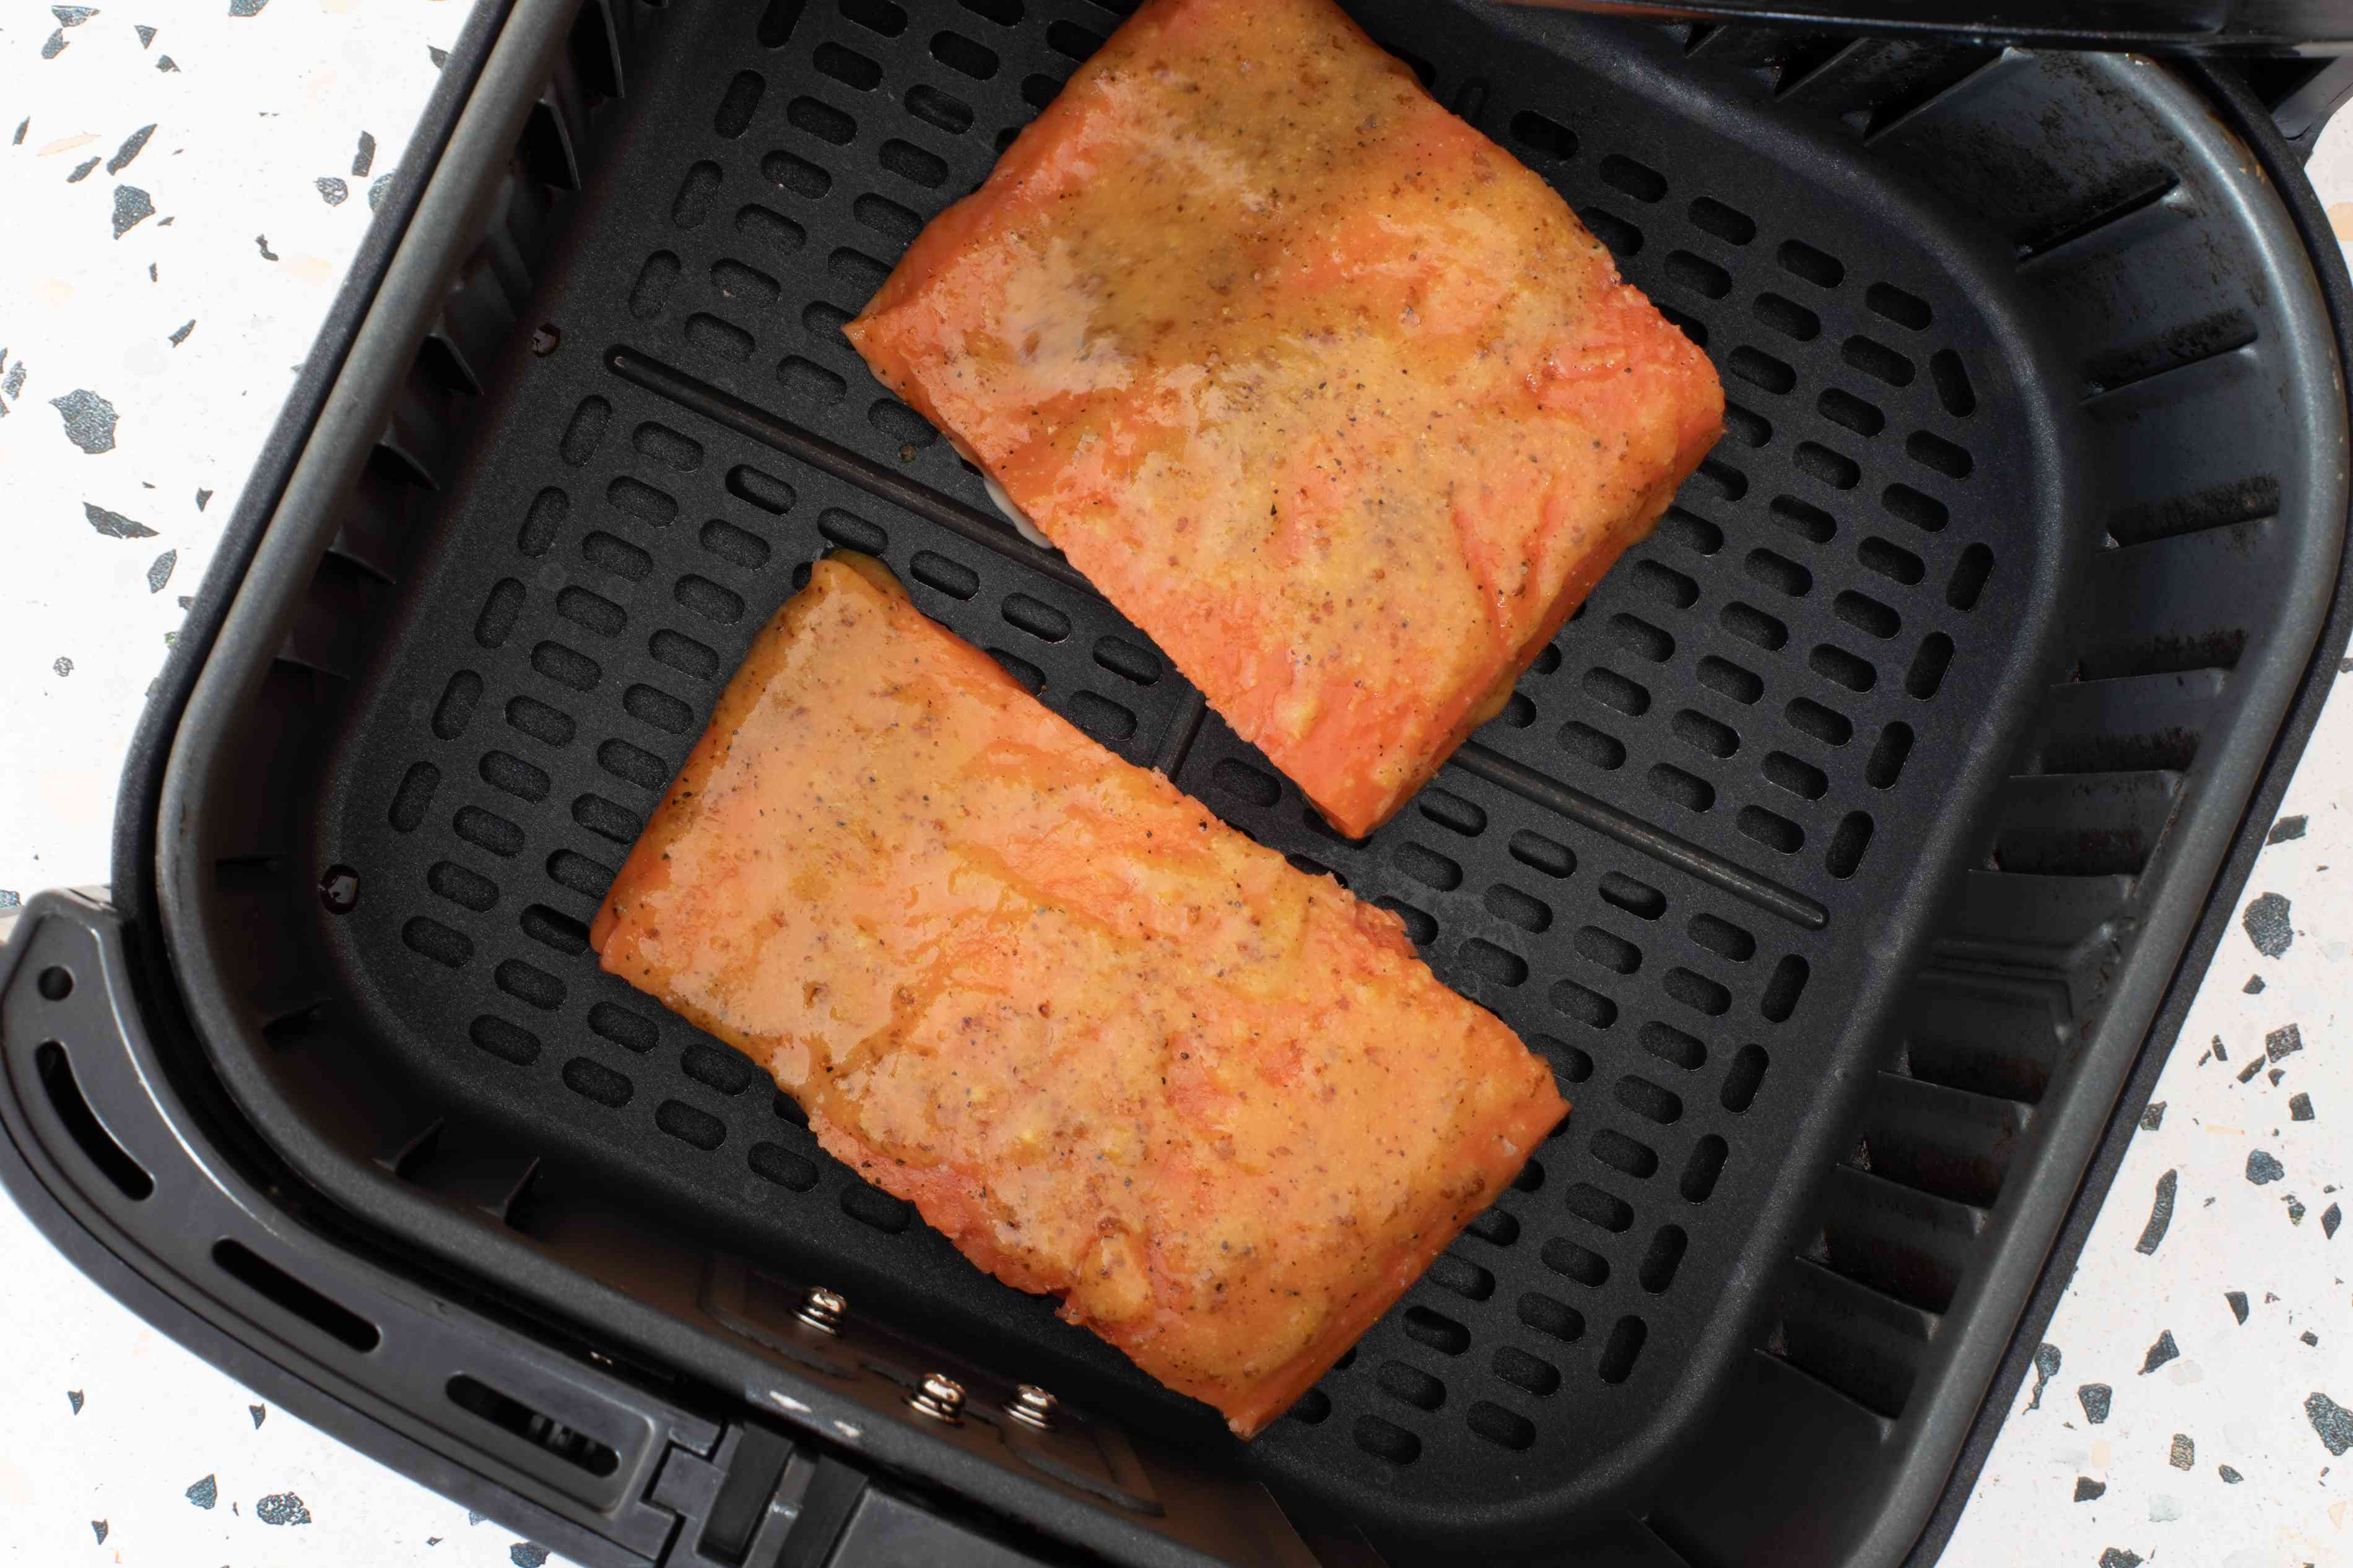 salmon fillets in the air fryer basket